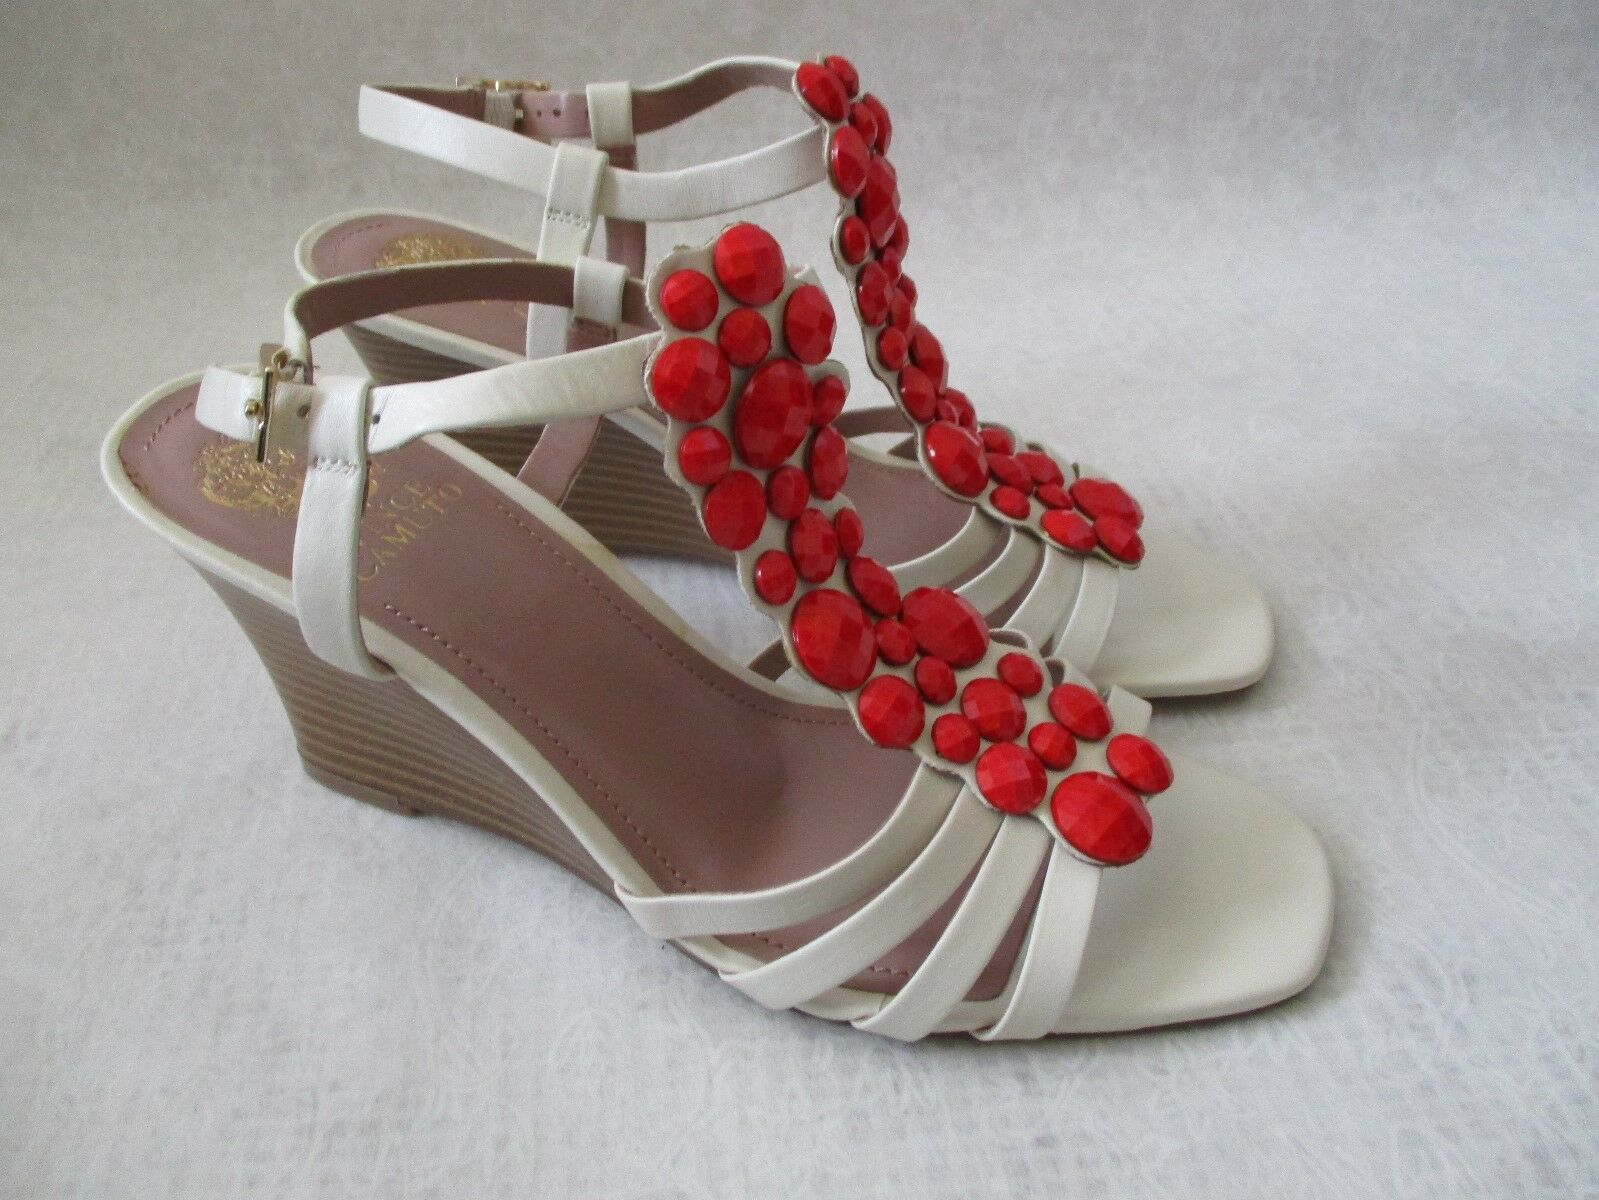 79 VINCE CAMUTO LEATHER WEISS ORLOV/ROT JEWELED WEDGE Schuhe SIZE 8 1/2 M - NEU